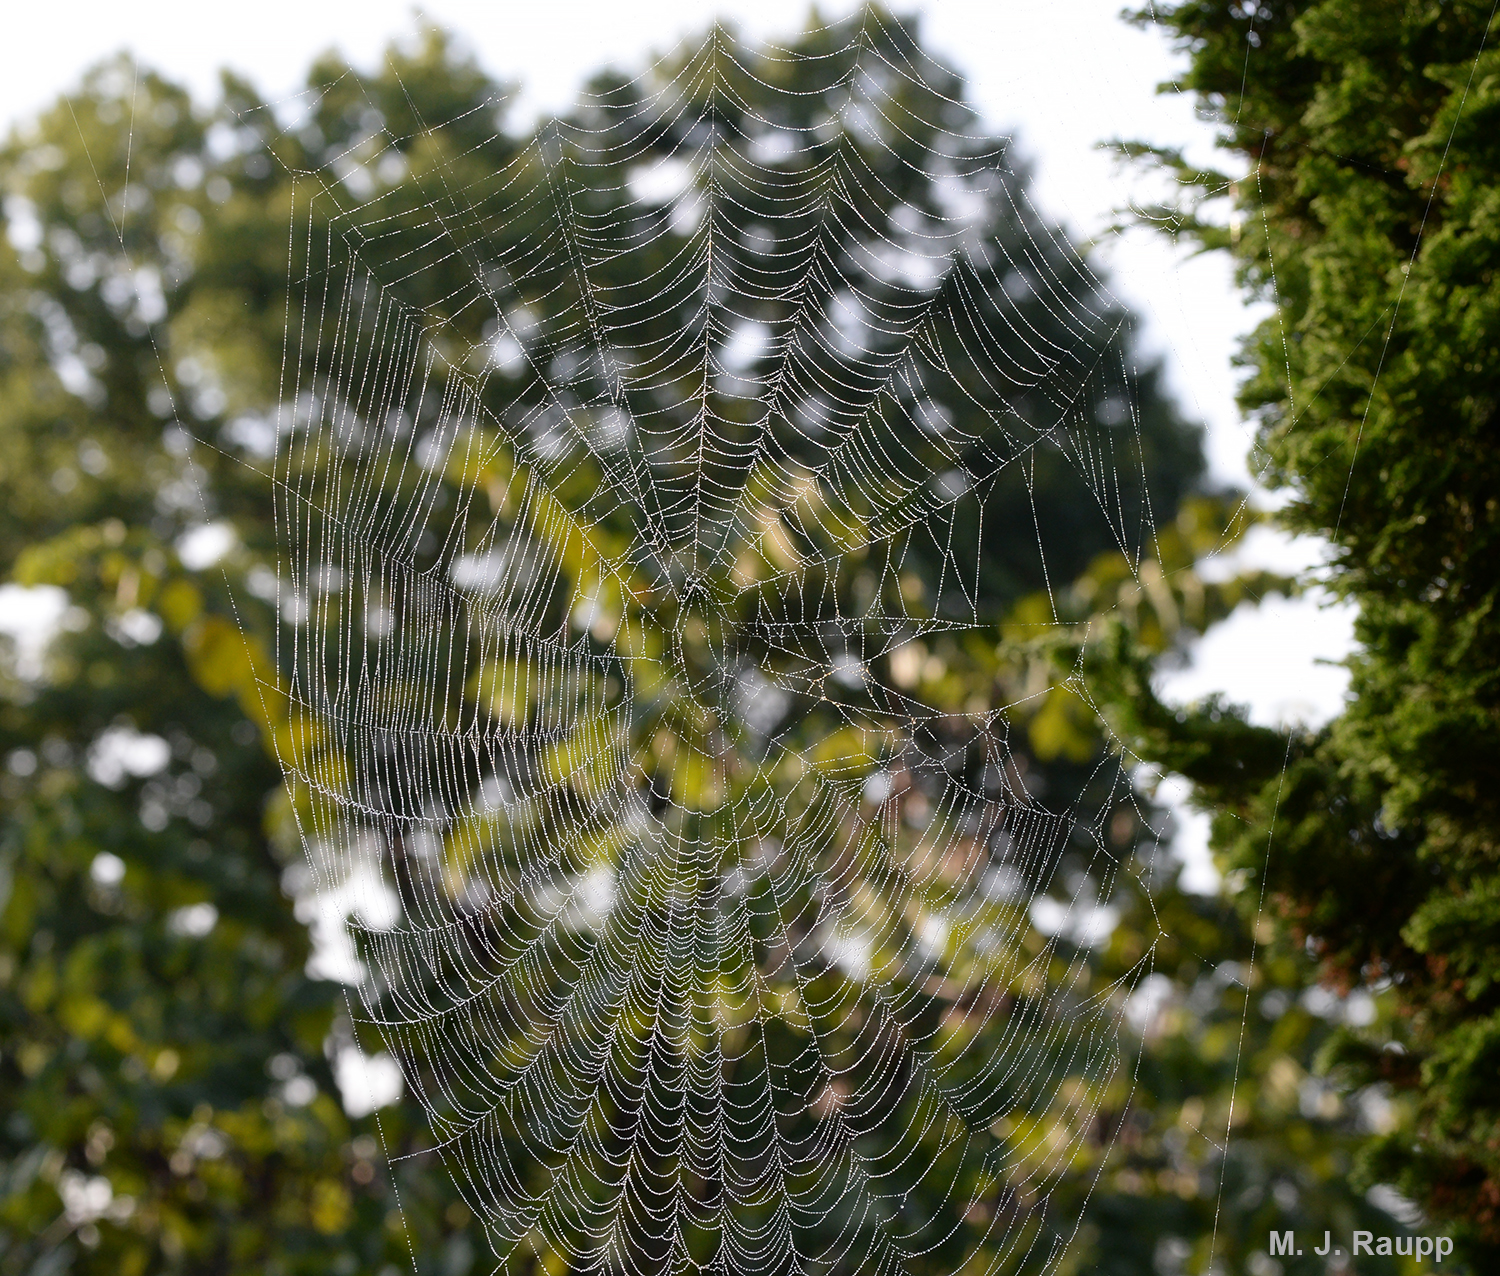 A fine morning mist reveals the beautiful web of a spotted orbweaver.